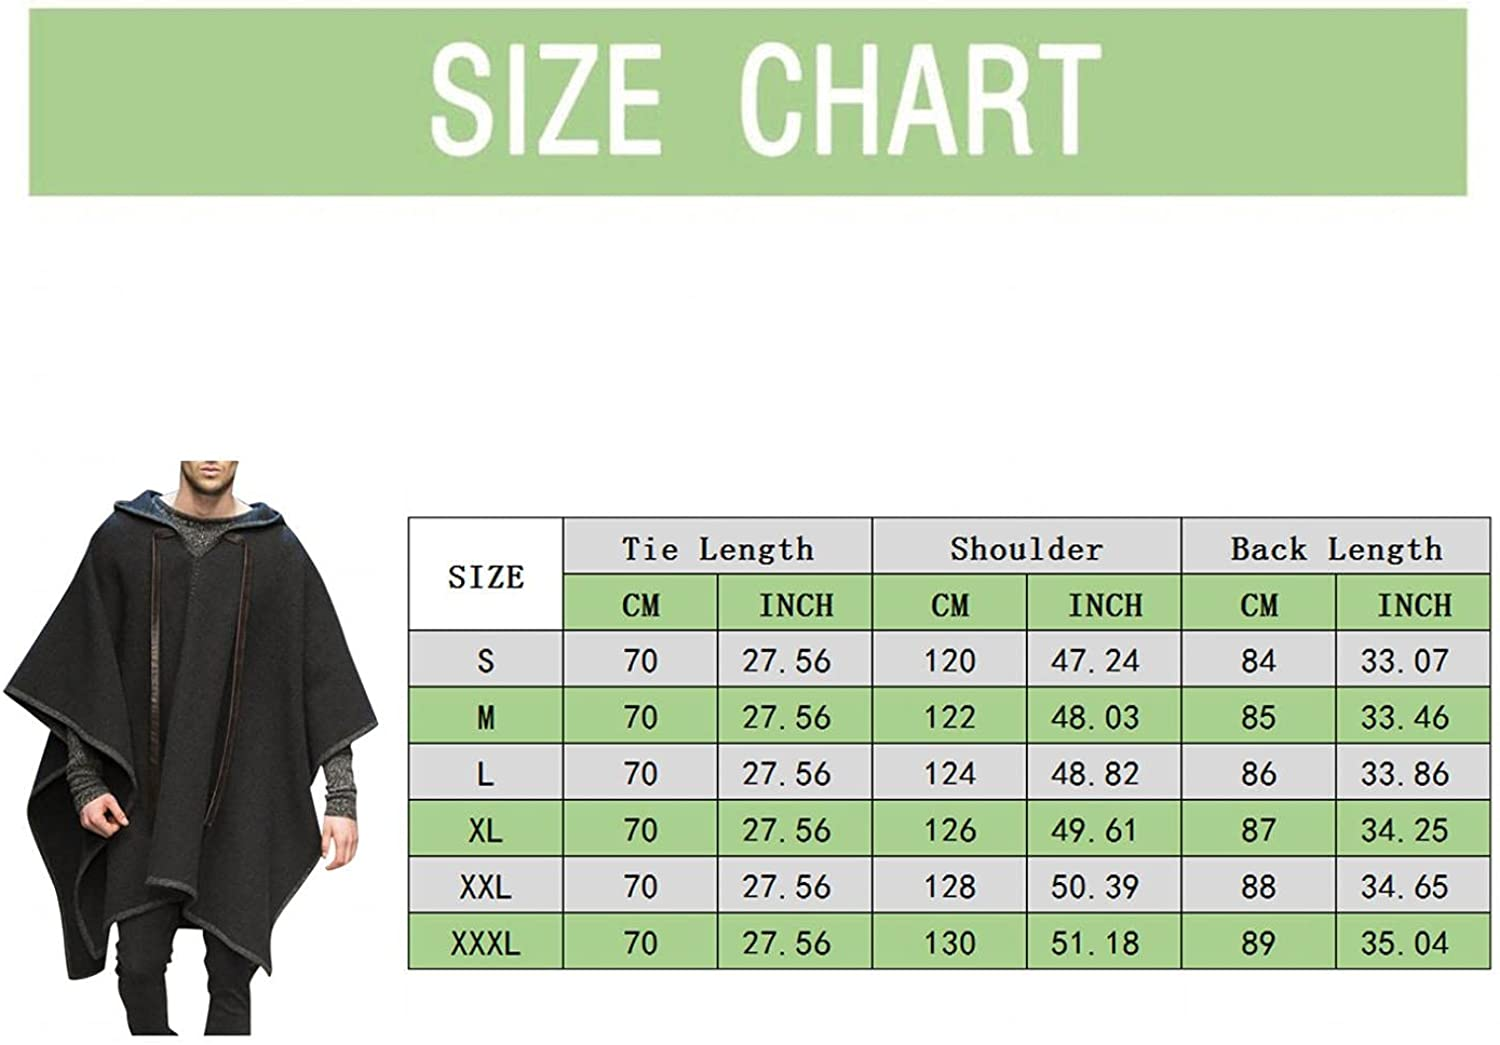 Qsctys Men's Shawl Casual Loose Fit Hooded Poncho Cape Cloak Fashion Coat Hoodie Pullover with Pocket Overcoat